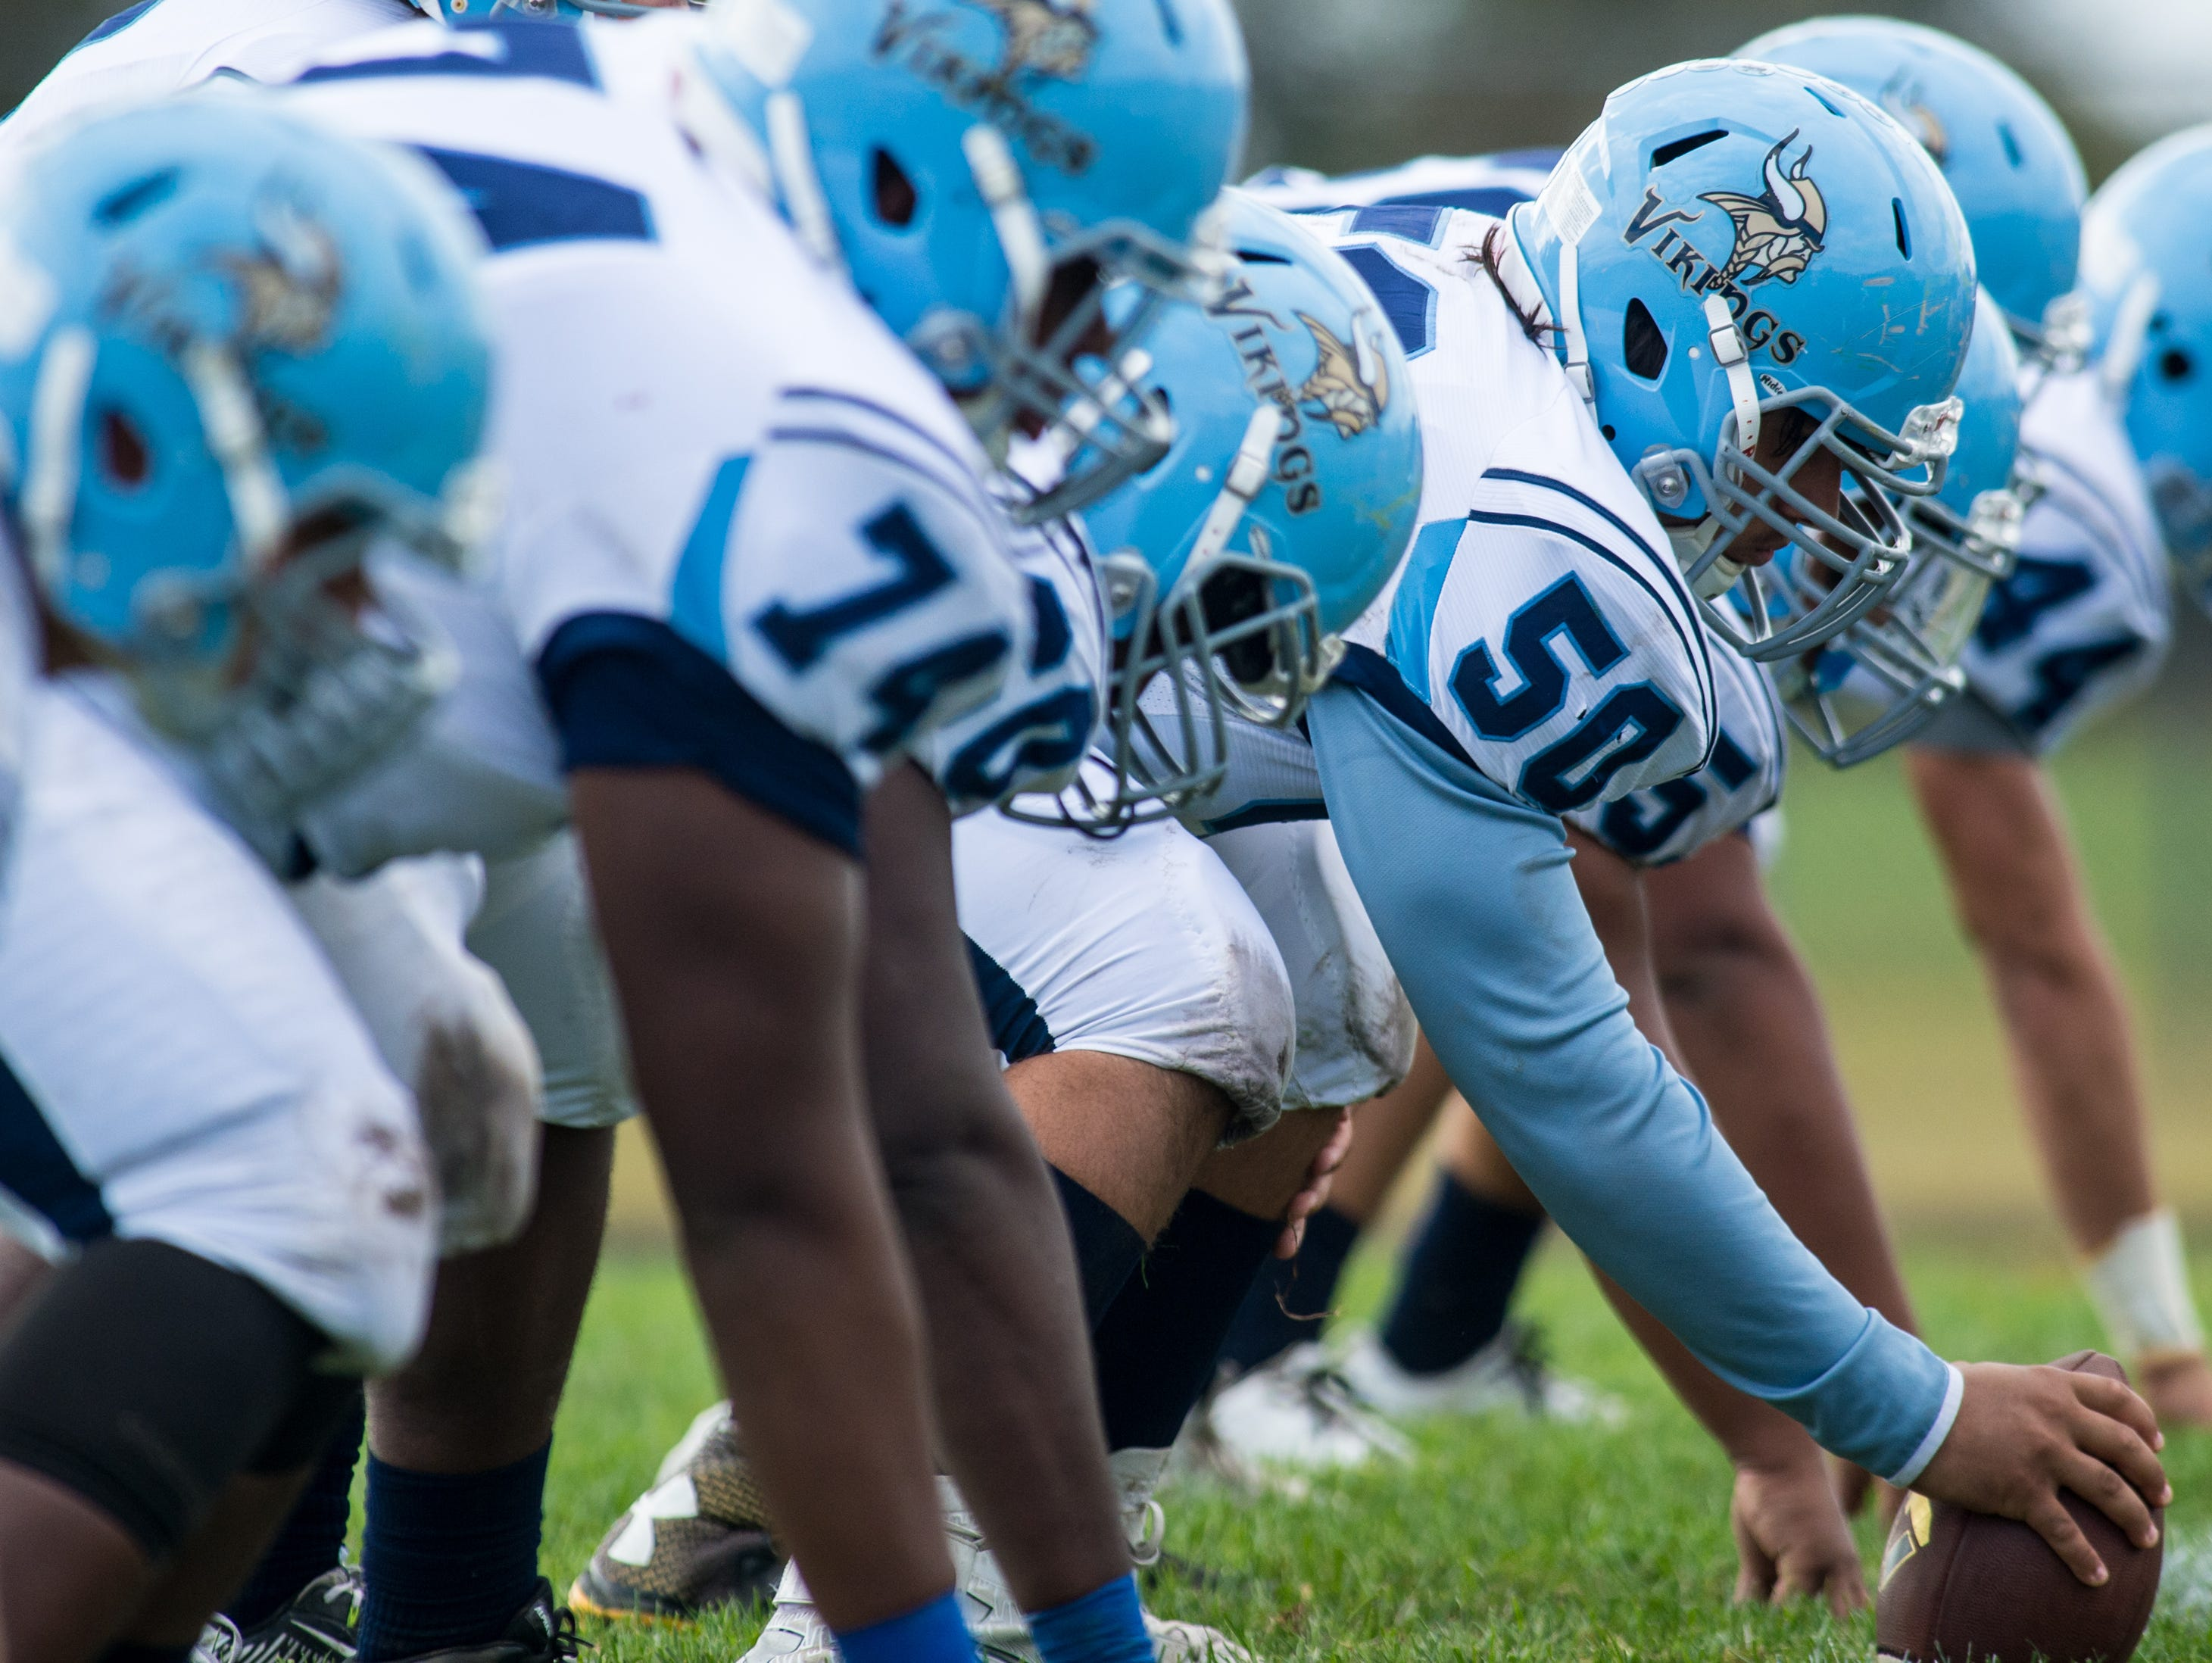 Cape Henlopen center Julian Medina (50) leads out the Viking offense against Sussex Central in Georgetown on Saturday, October 10th.